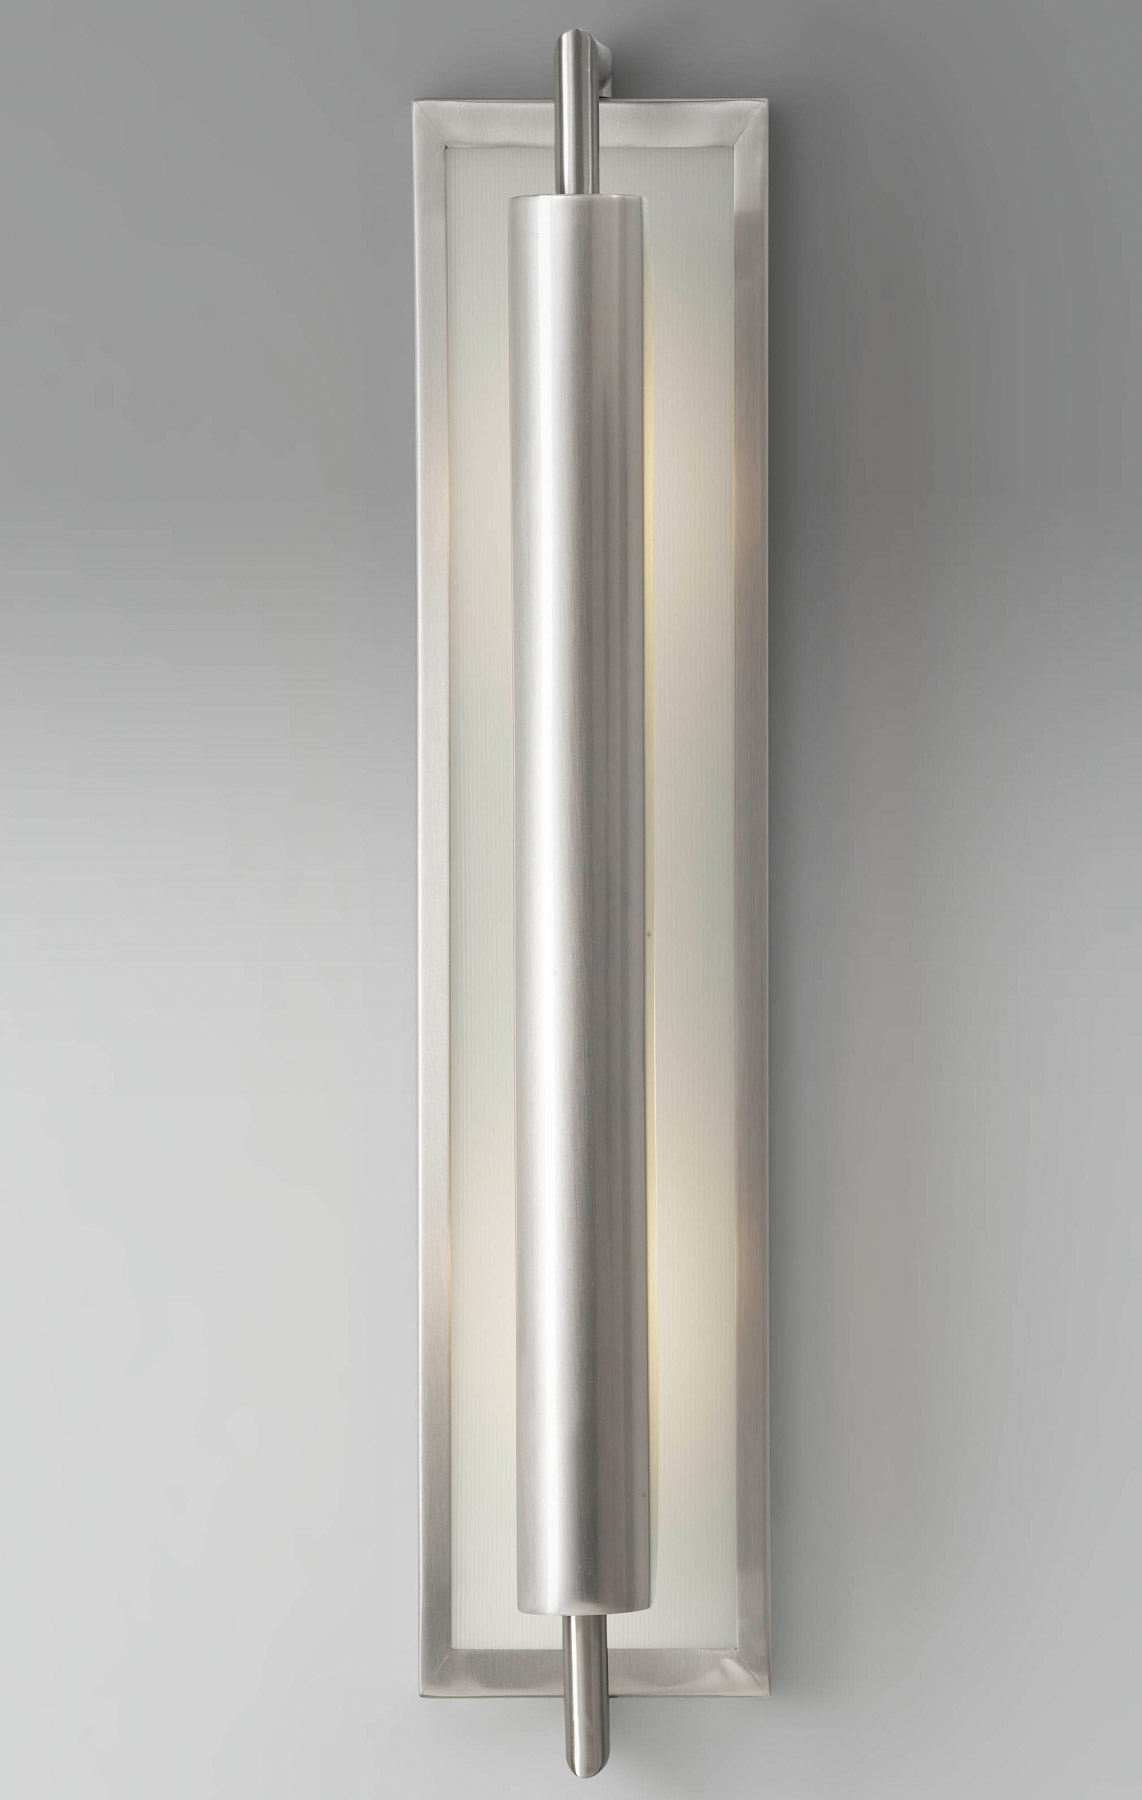 Feiss wb1452bs mila ada wall sconce murray feiss wb1452bs mila ada wall sconce amipublicfo Choice Image